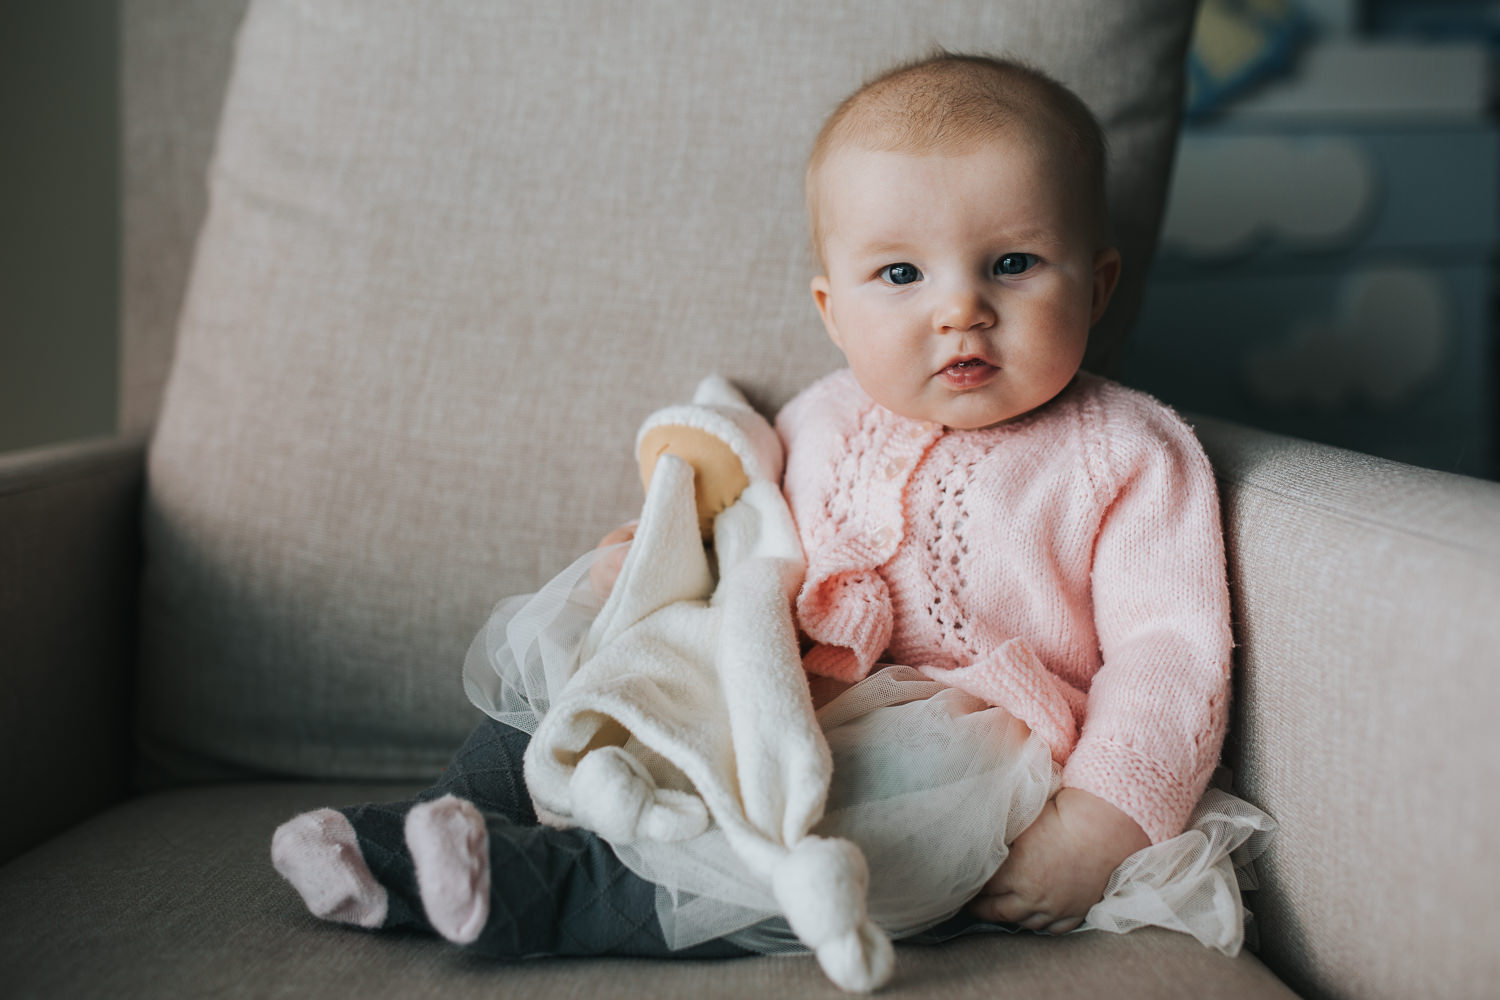 5 month old baby girl in pink sweater sitting on chair looking at camera - Markham lifestyle photography